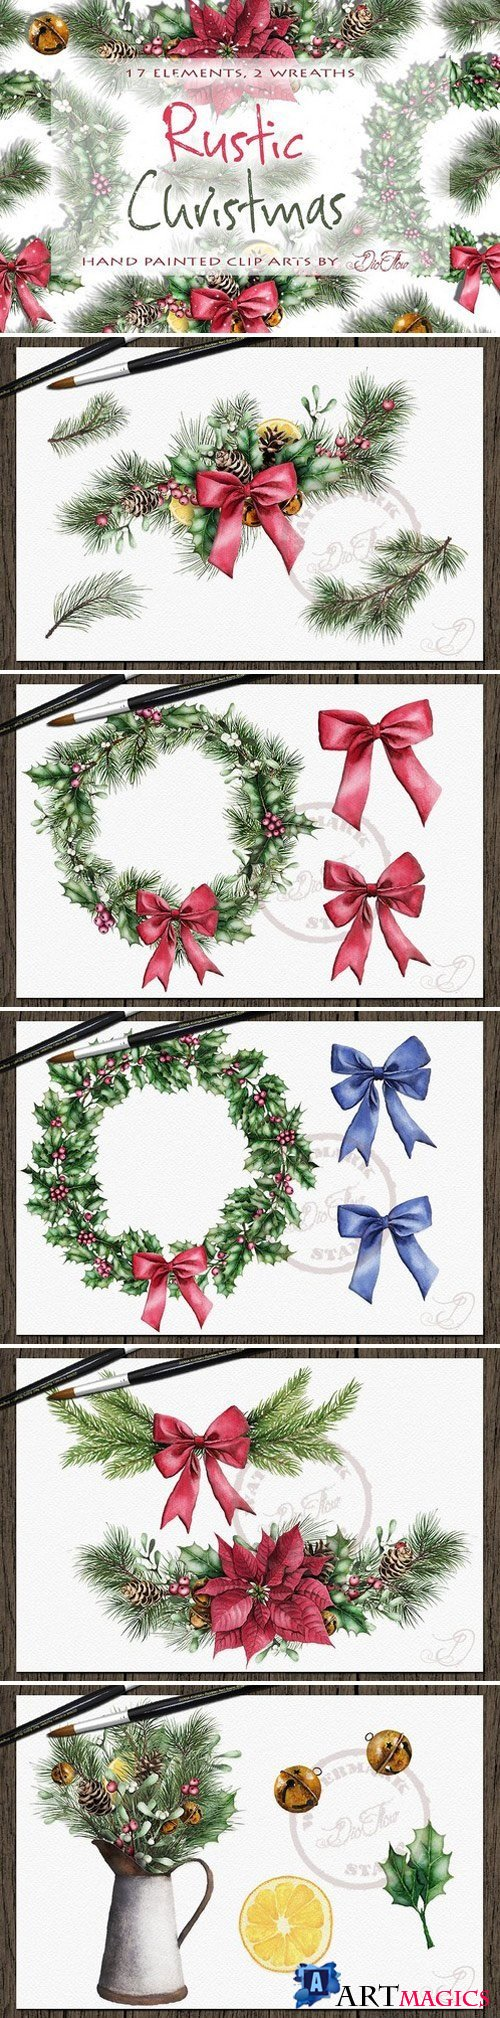 Rustic Christmas Watercolor Clip Art 2102619